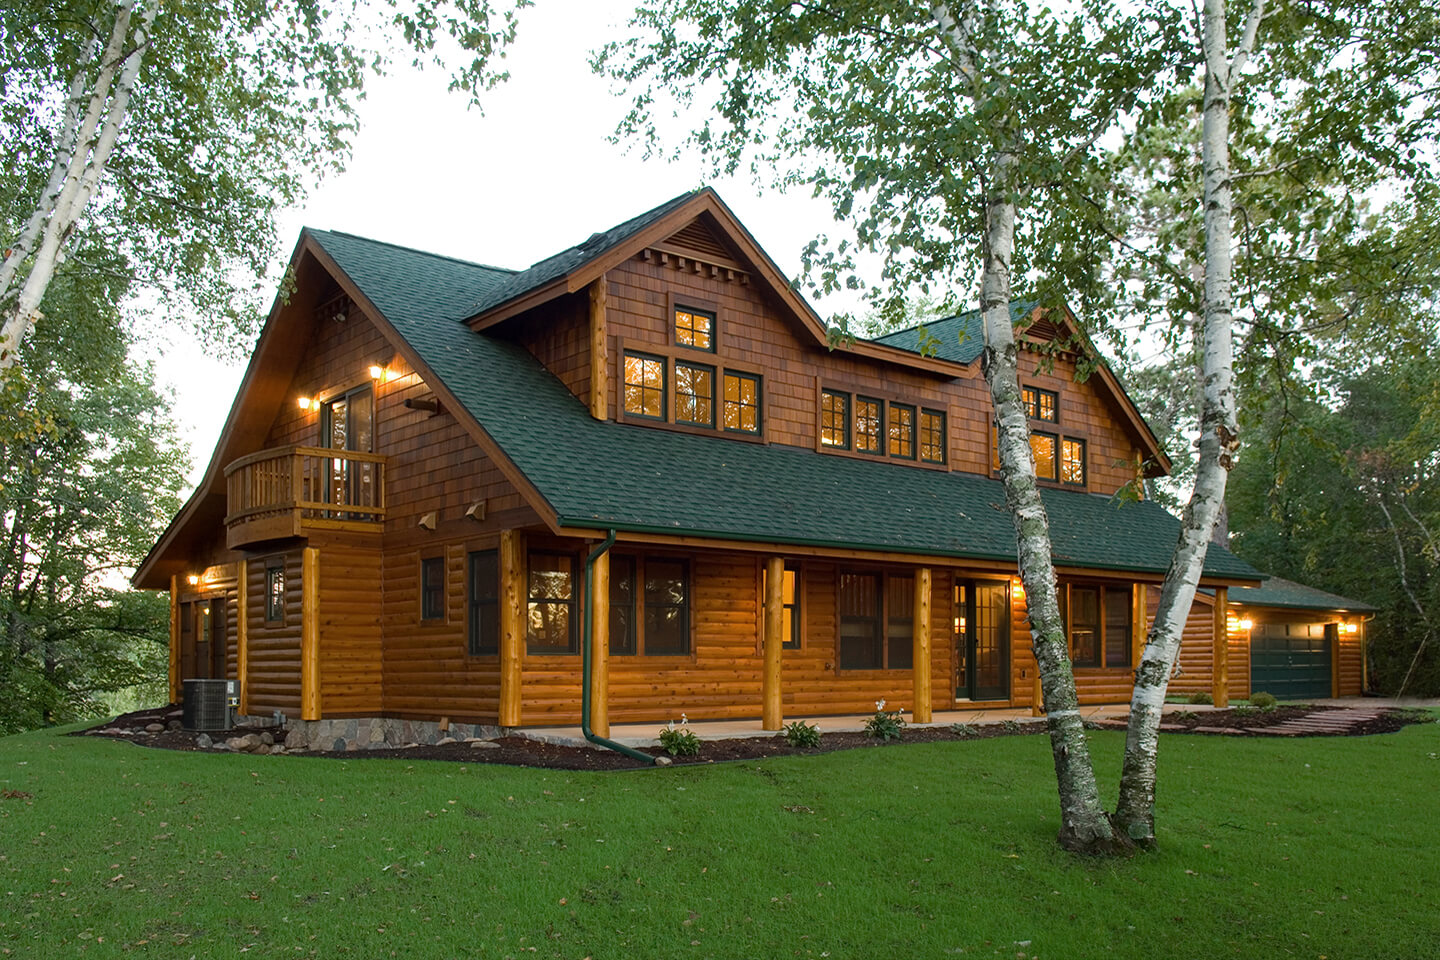 Log home exterior view on entrance side